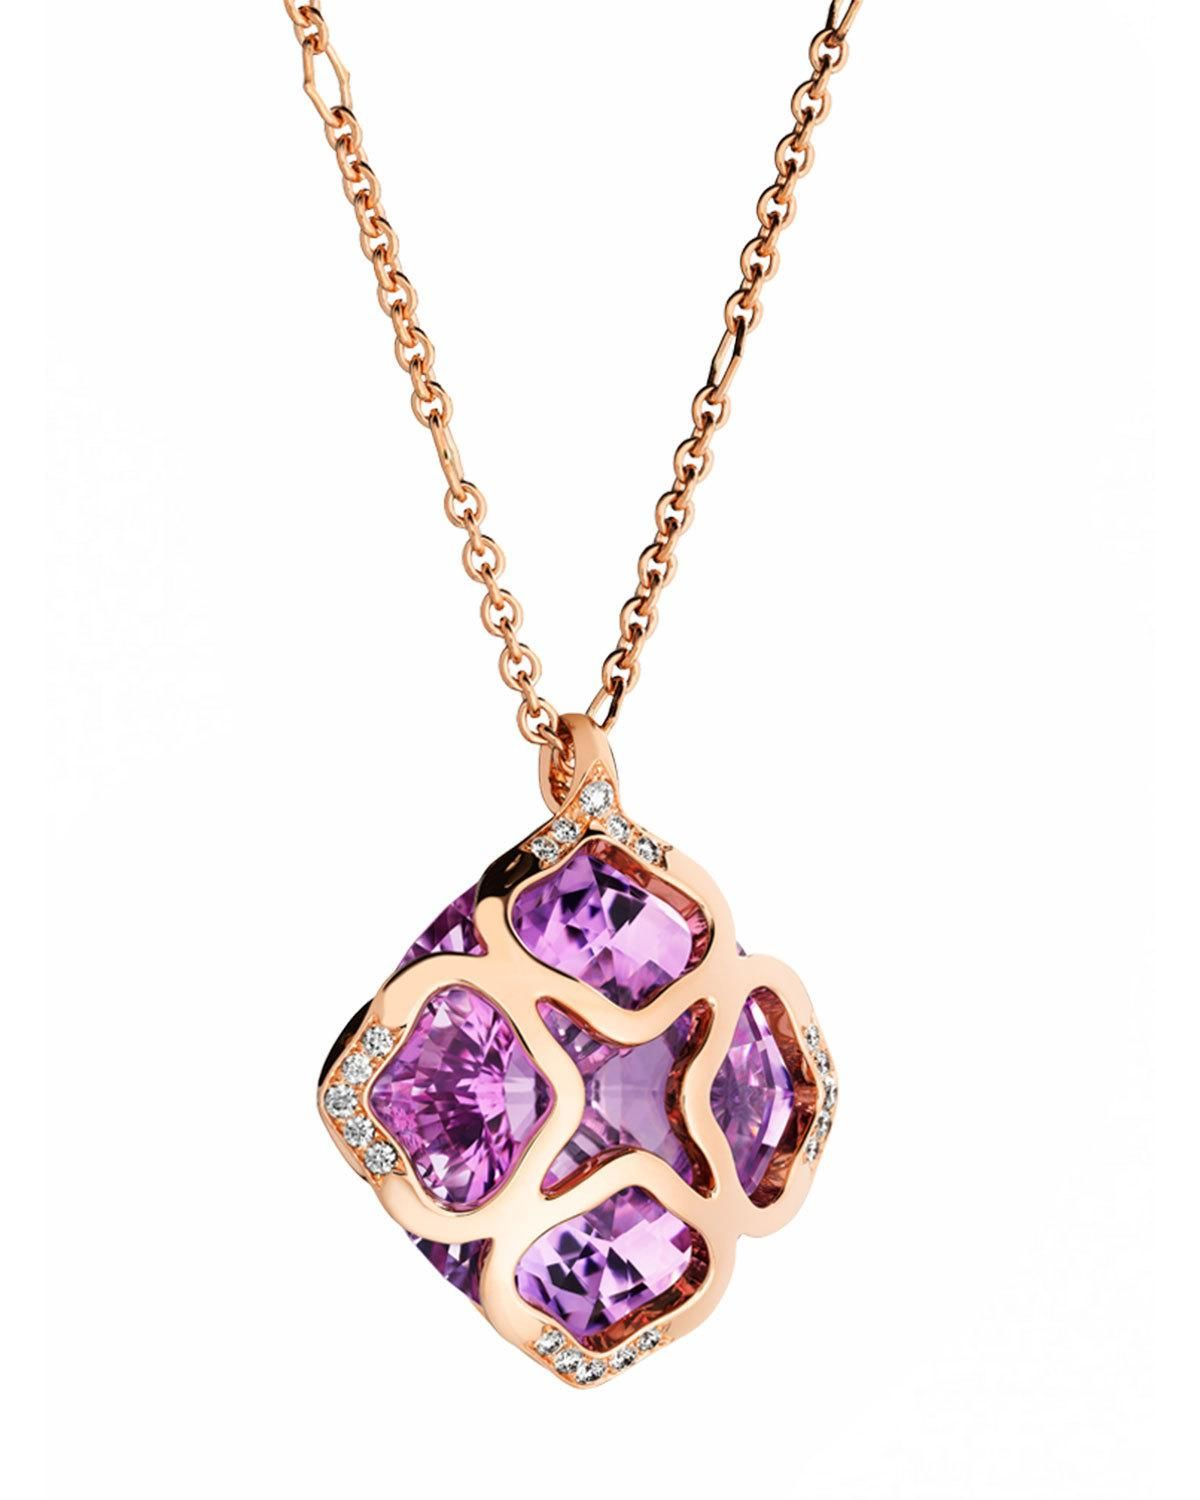 256f2673db06e Imperiale Amethyst Station Necklace with Diamonds | Products ...